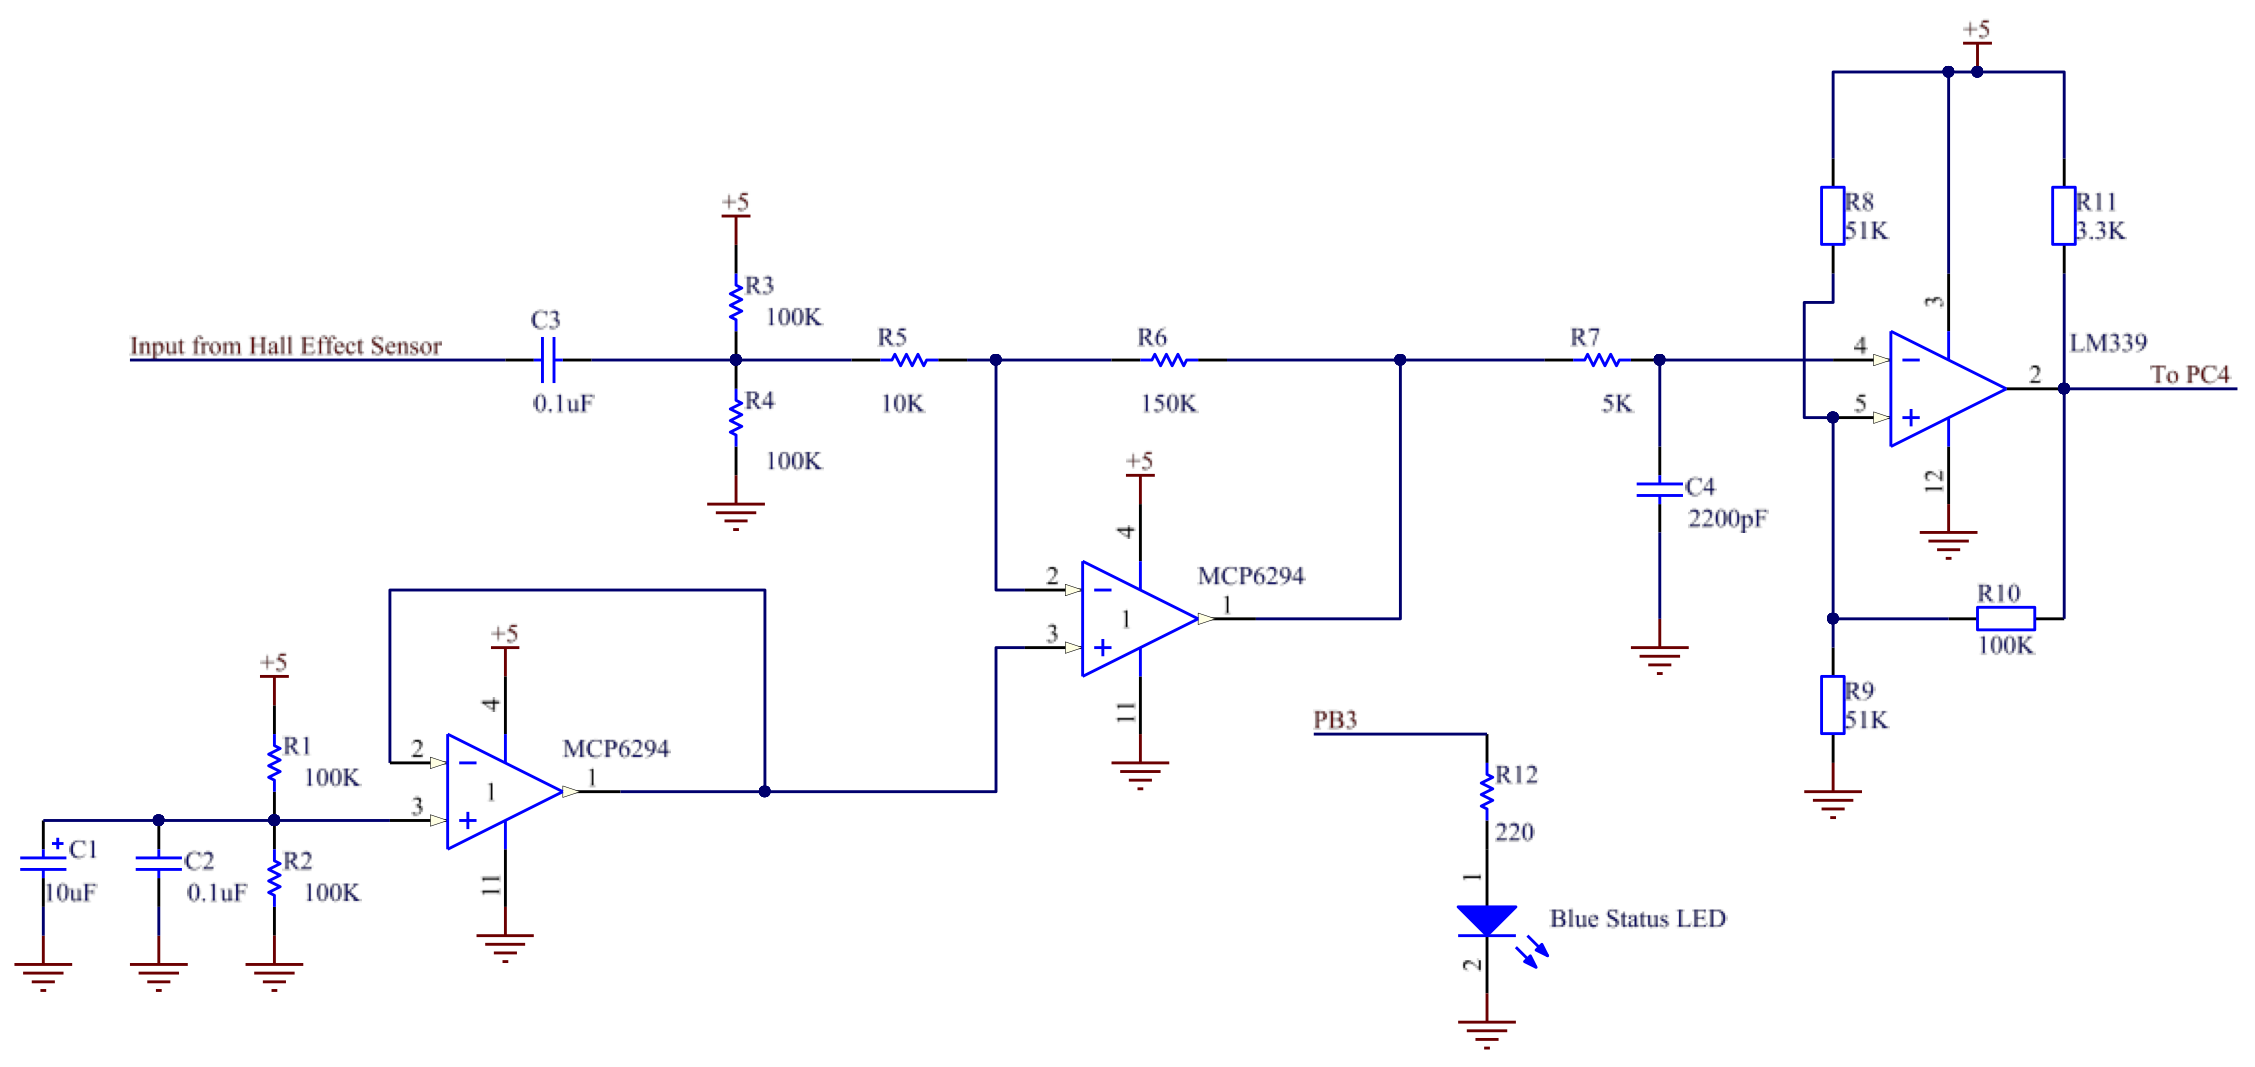 Me218b Project Lm339 This Circuit Is A Basic Two Contact Touch Switch Sensor Then The Comparator With Hysteresis Ignores Wave Ripples Due To Noise And Produces Stable Squared